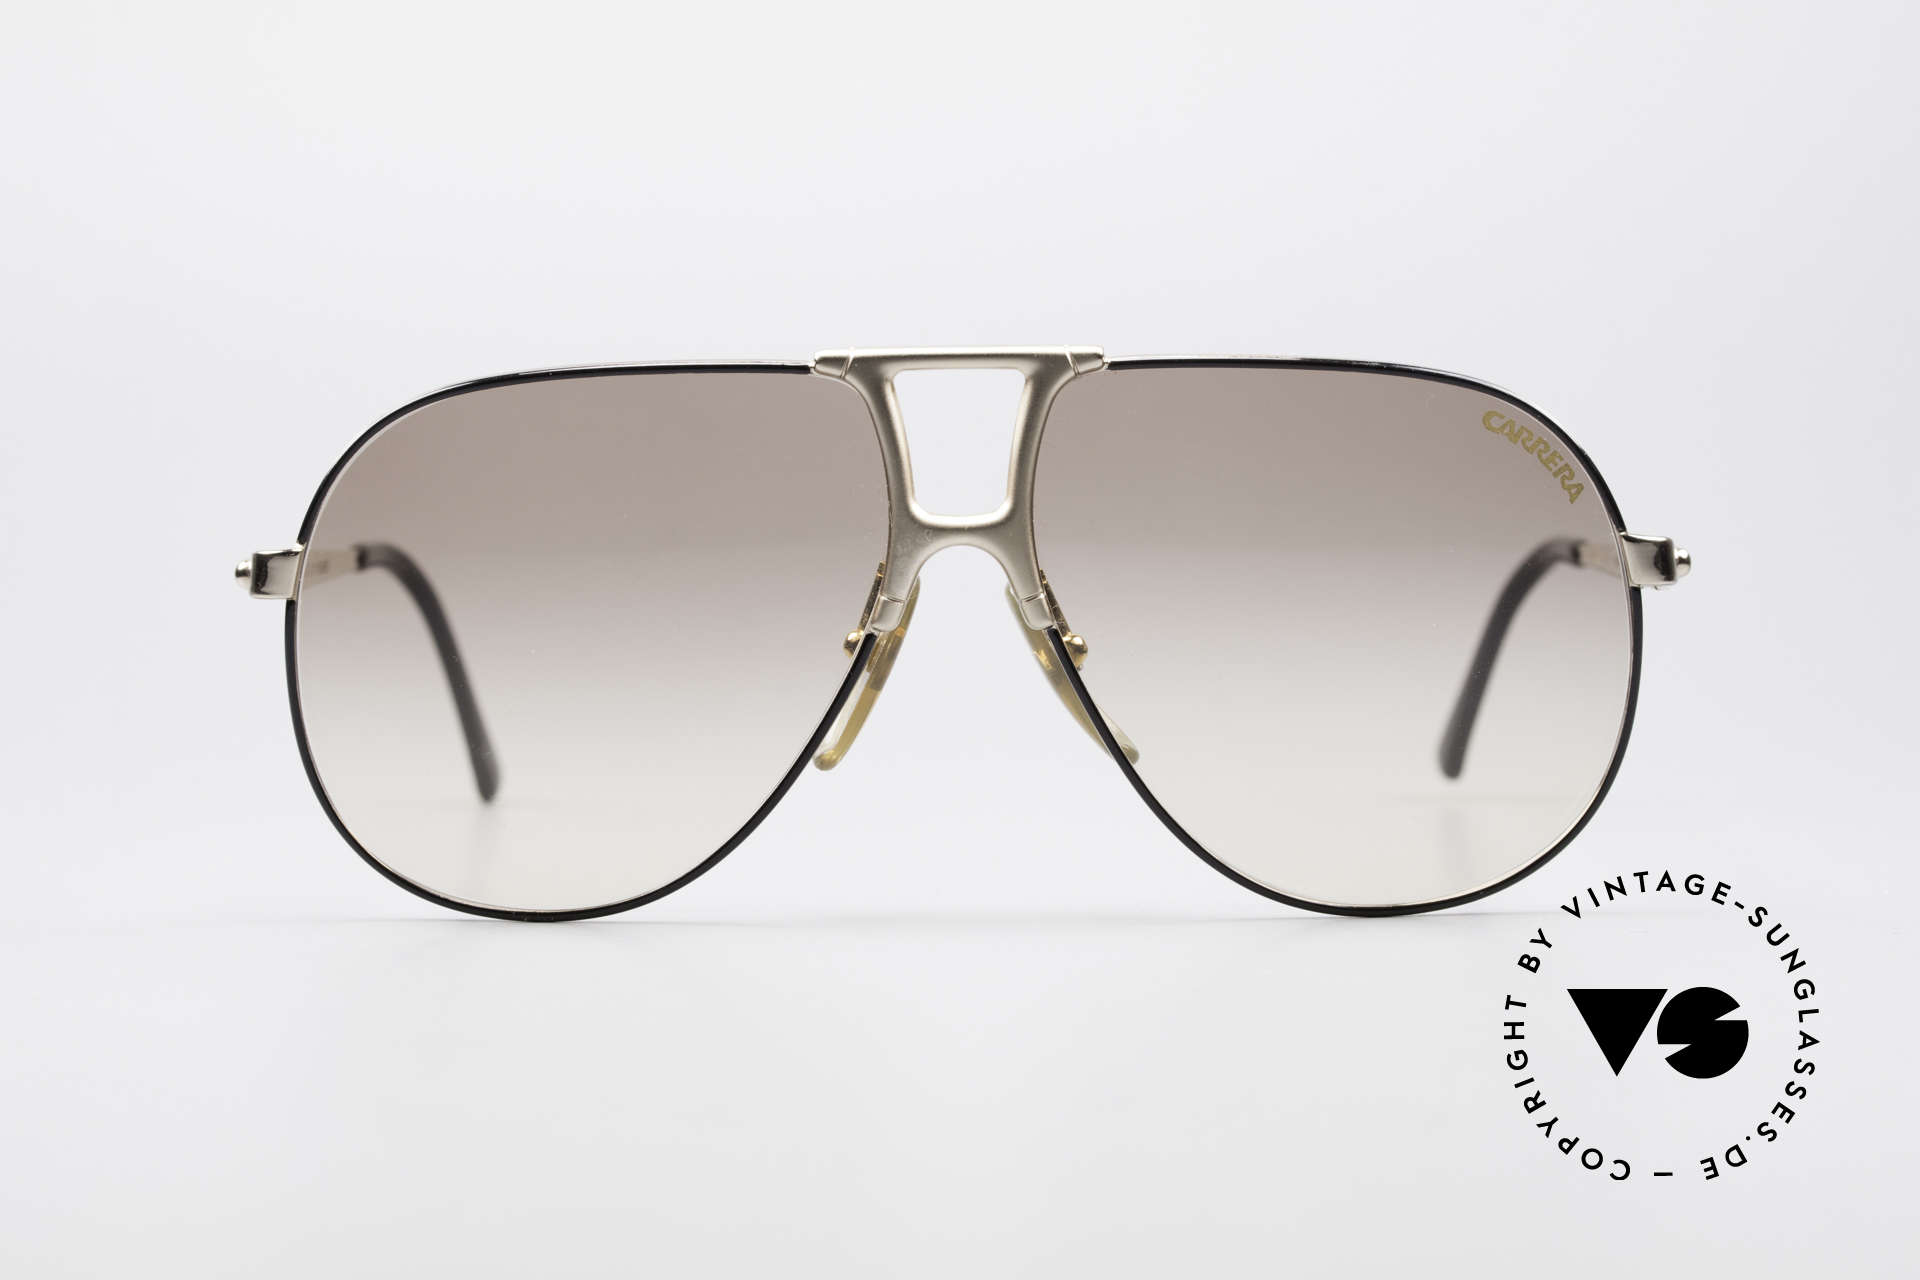 Boeing 5731 Small 80's Aviator Sunglasses, craftsmanship & design made to Boeing's specifications, Made for Men and Women